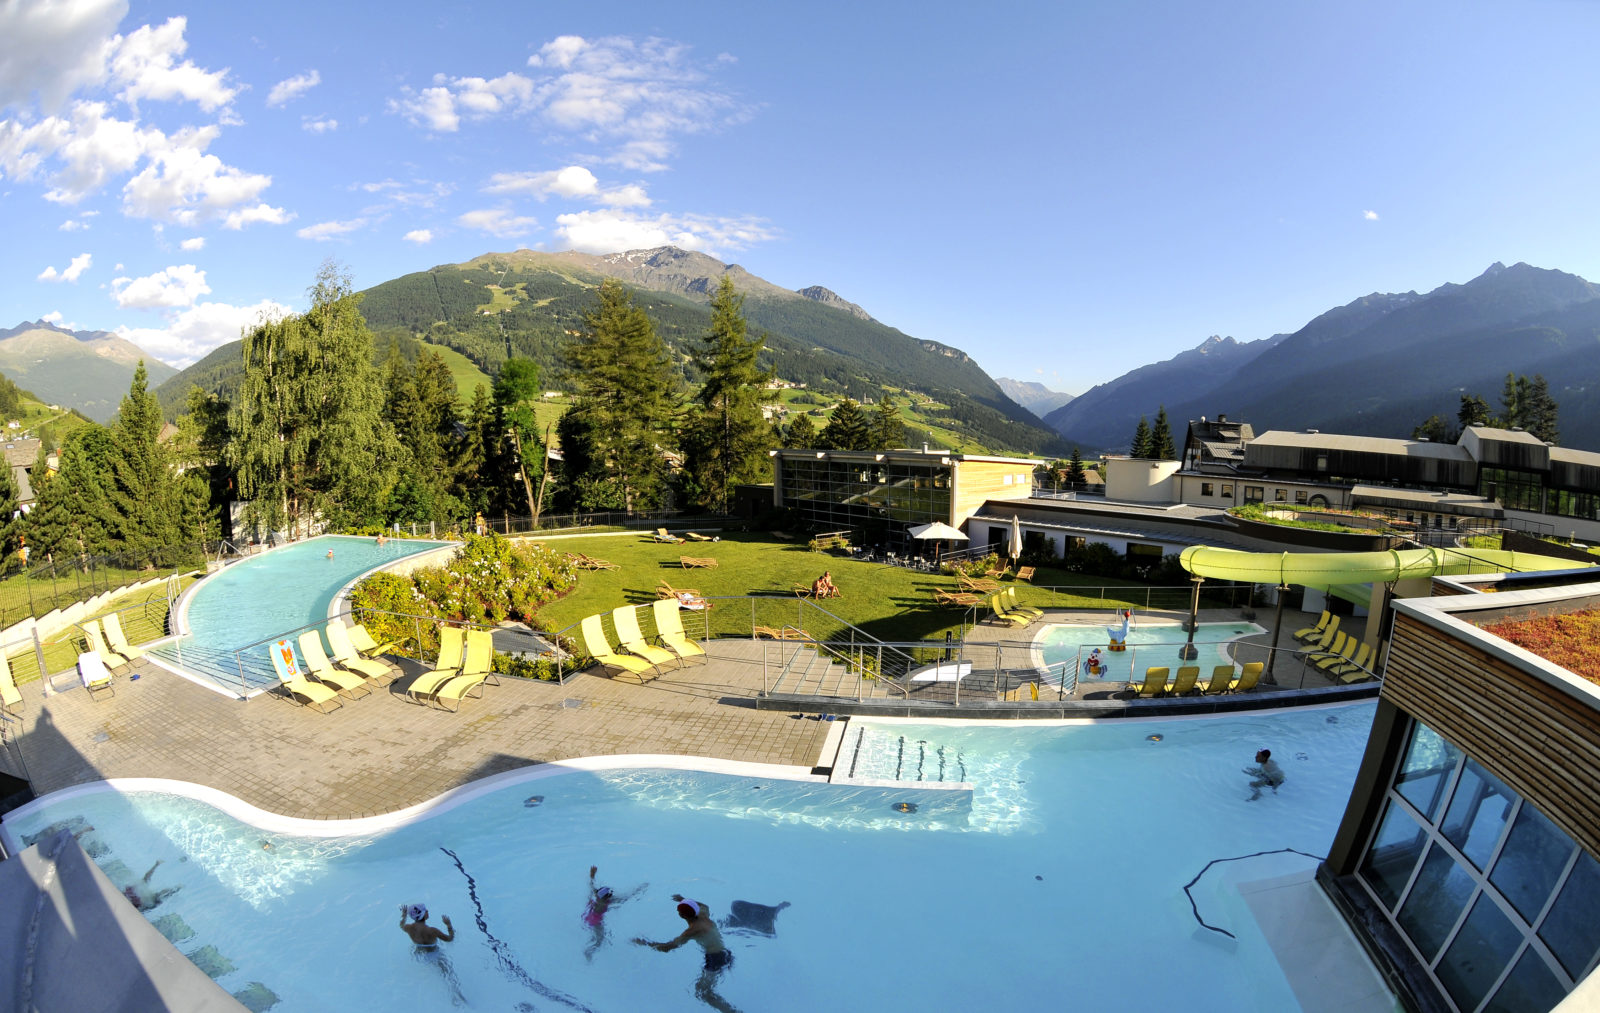 https://pirovano.it/wp-content/uploads/2018/03/terme-bormio-piscina-esterna-pano-1600x1013.jpg